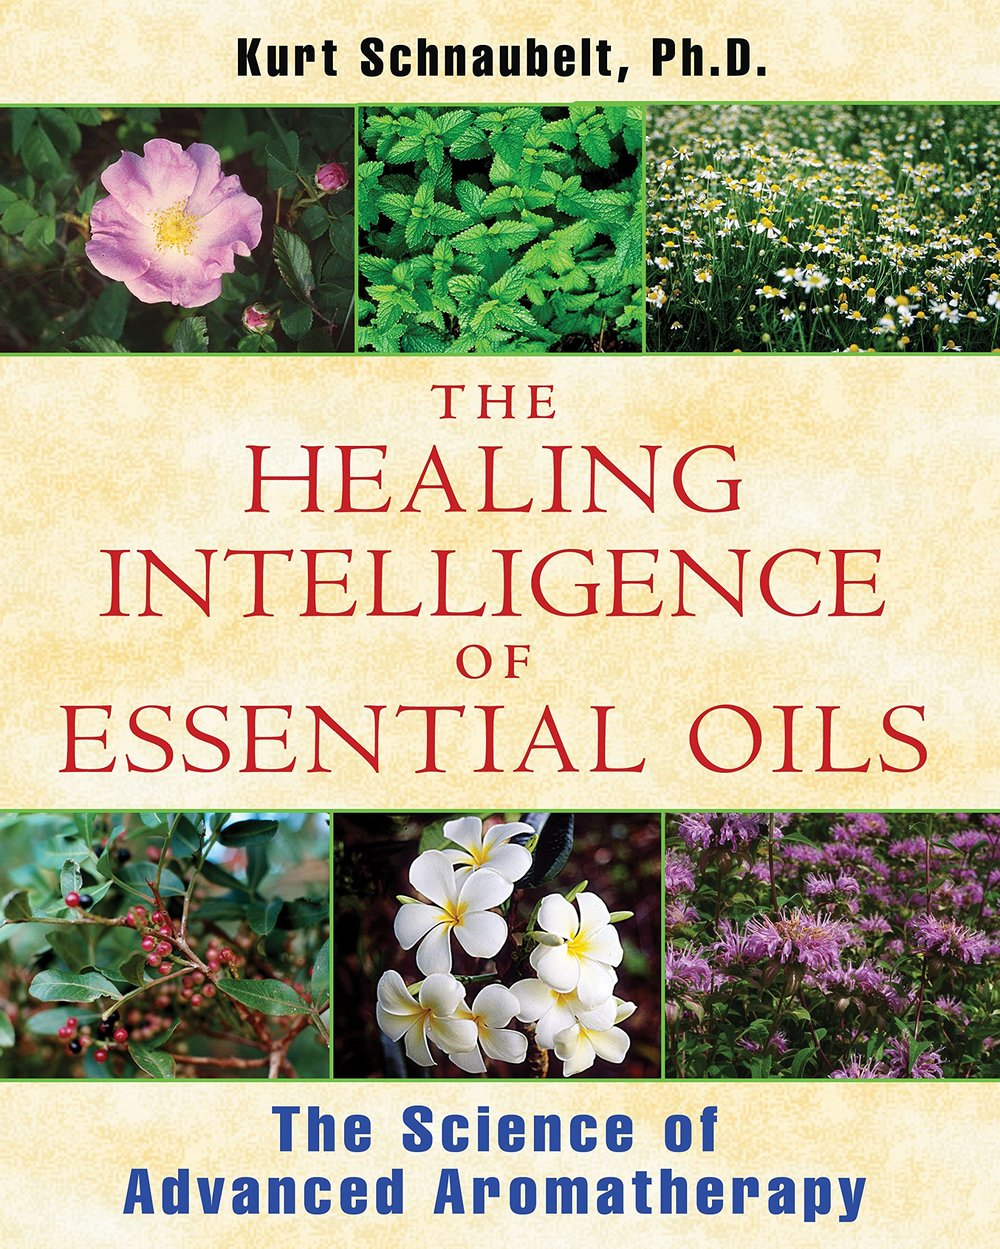 healing intelligence of essential oils.jpg